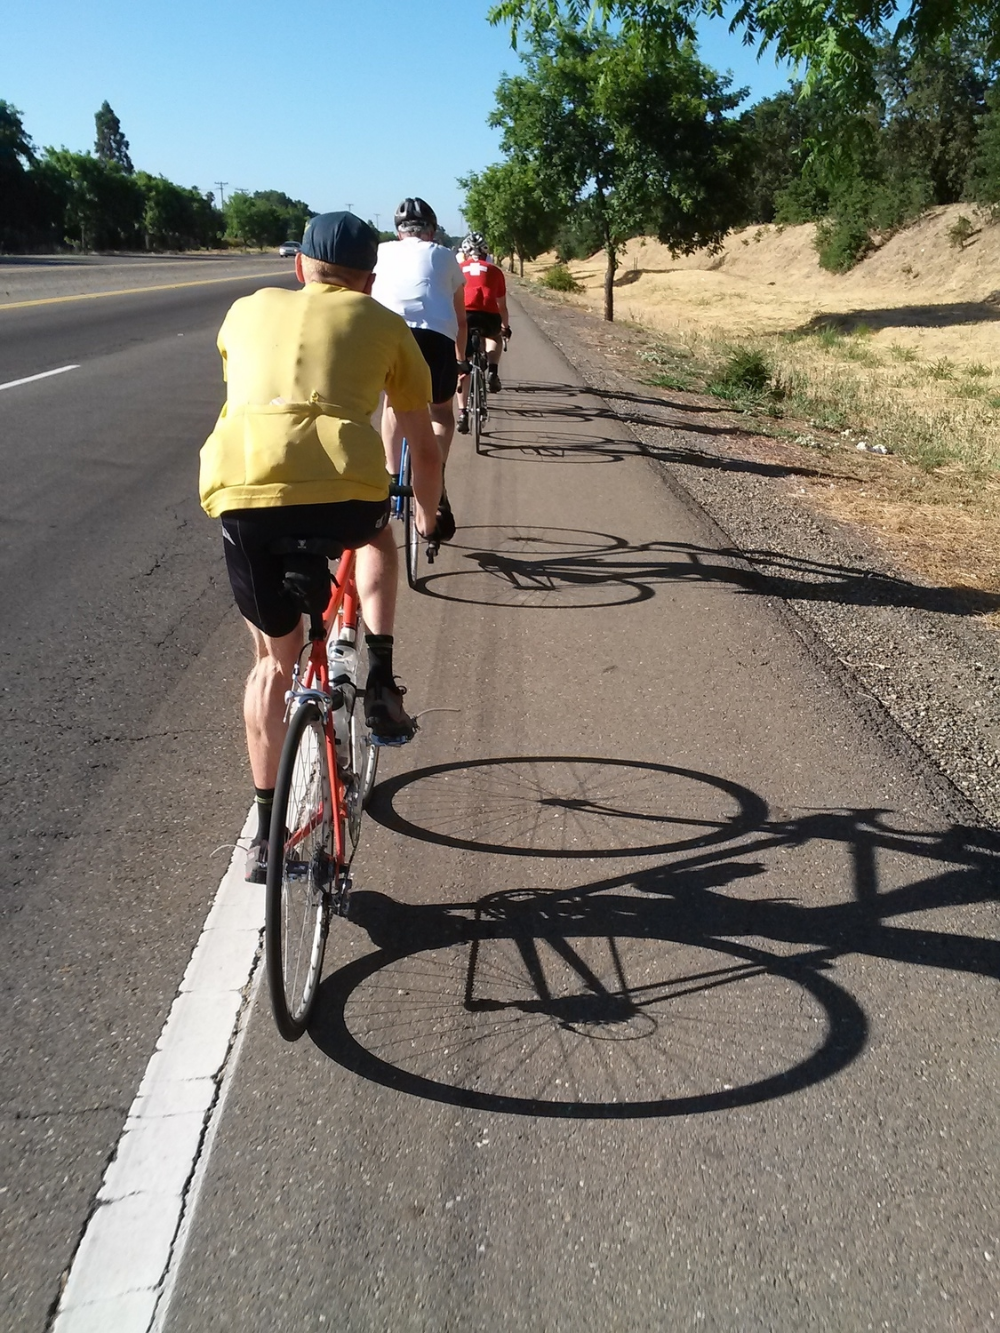 A view of the 6th Annual Freedom Ride (July 4th), organized by my boyfriend, Mel, the        Normal   0           false   false   false     EN-US   X-NONE   X-NONE                                        MicrosoftInternetExplorer4                                           man in yellow . I got a good taste of the ride even if I didn't complete all 65 miles of it.